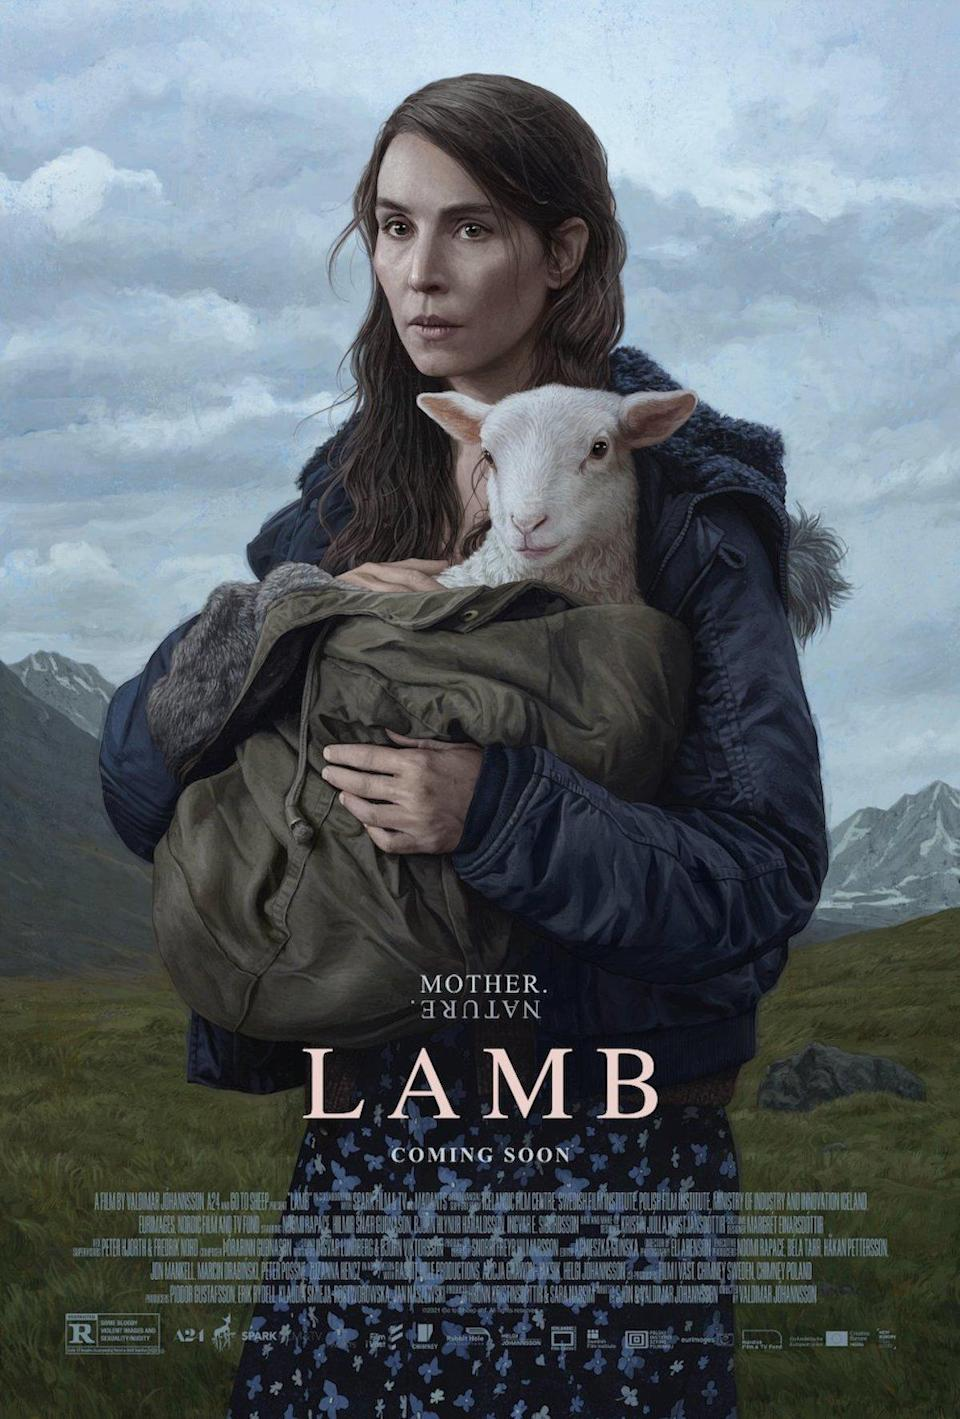 A woman holds a goat on a mountainside in a poster for A24's Lamb